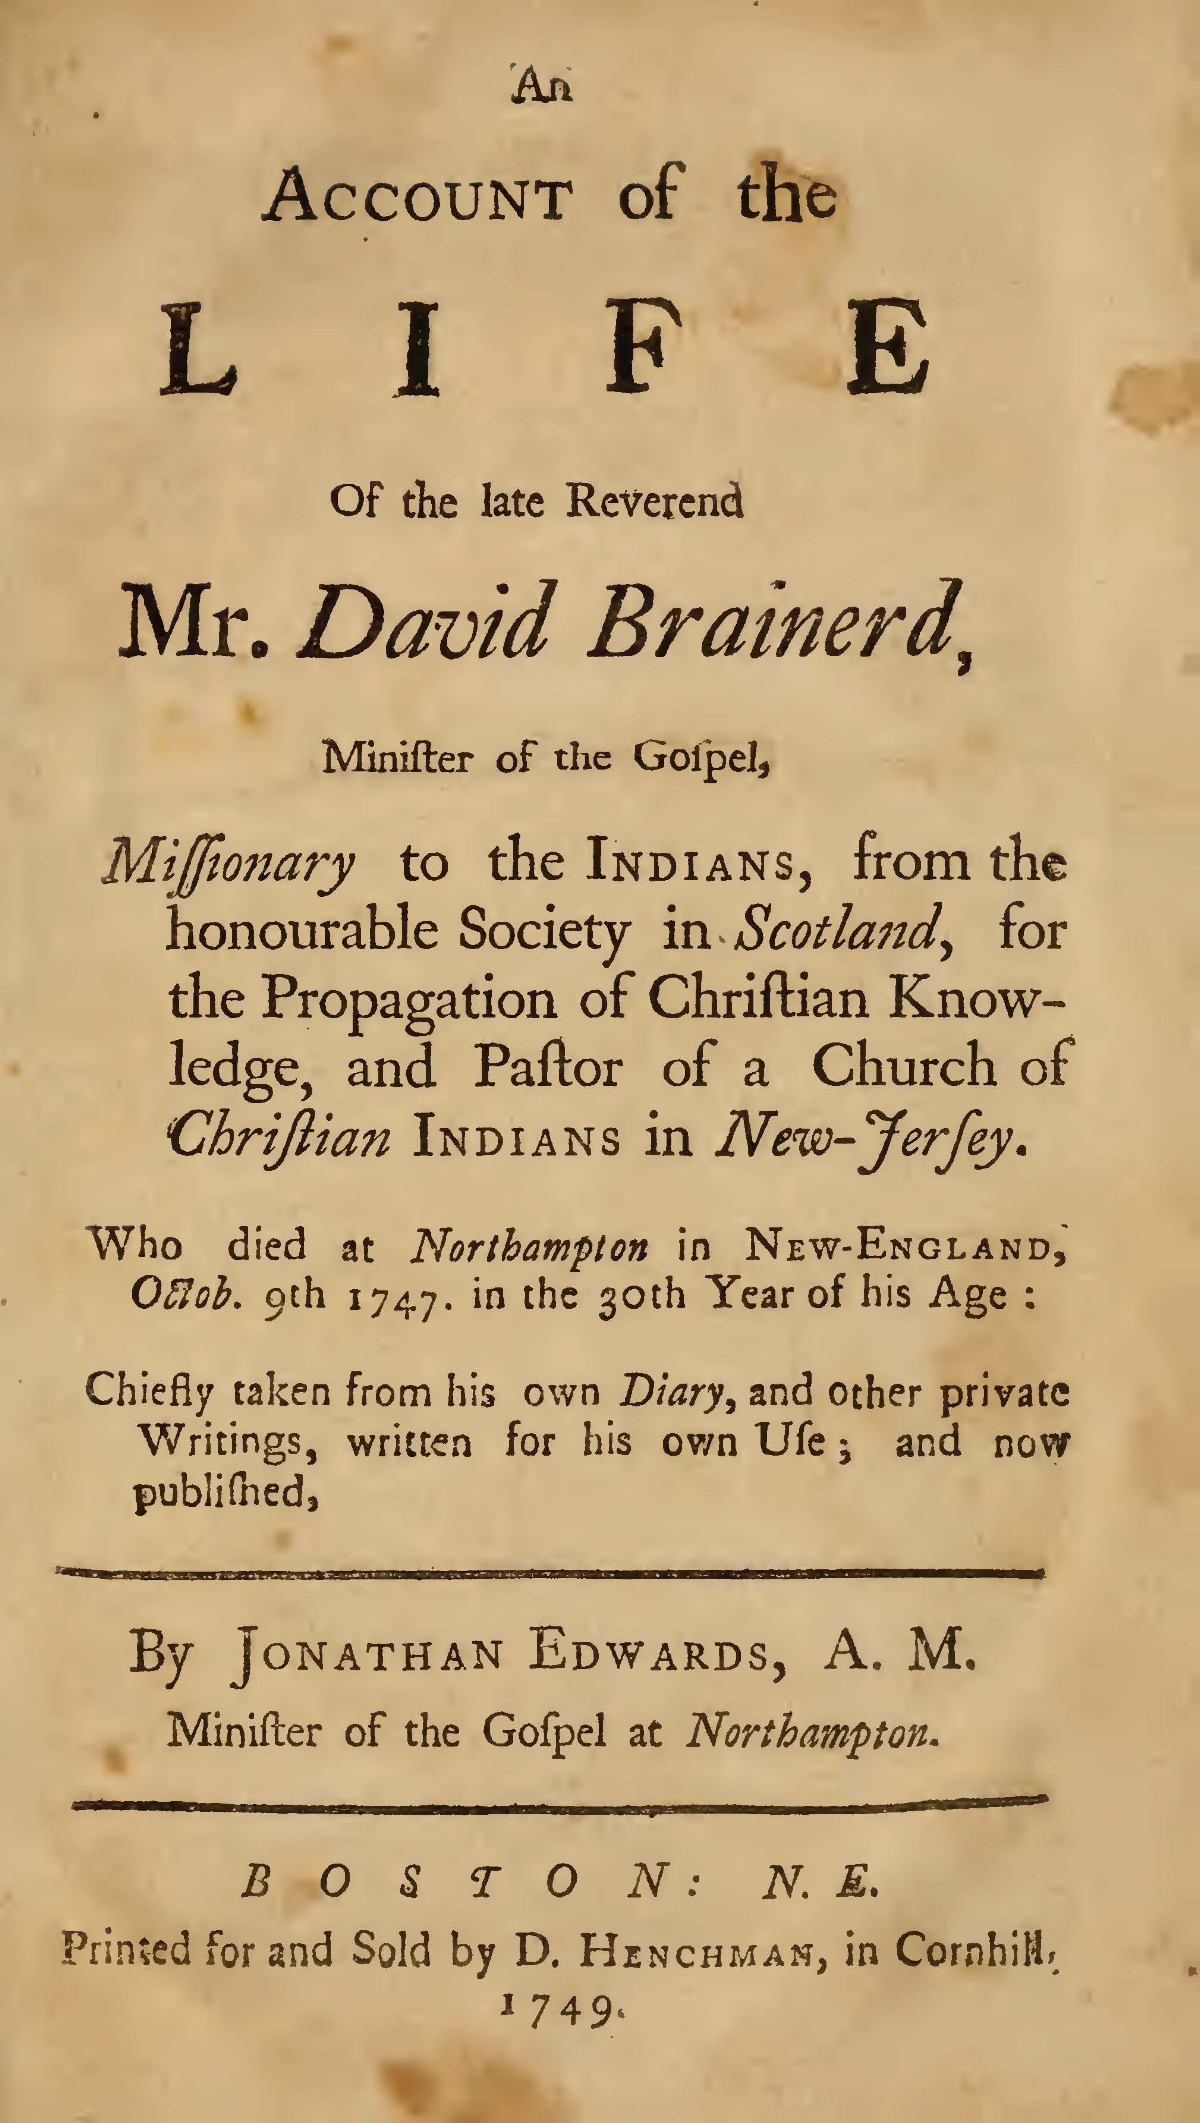 Brainerd, David, An Account of the Life of the Late Reverend Mr. David Brainerd Title Page.jpg